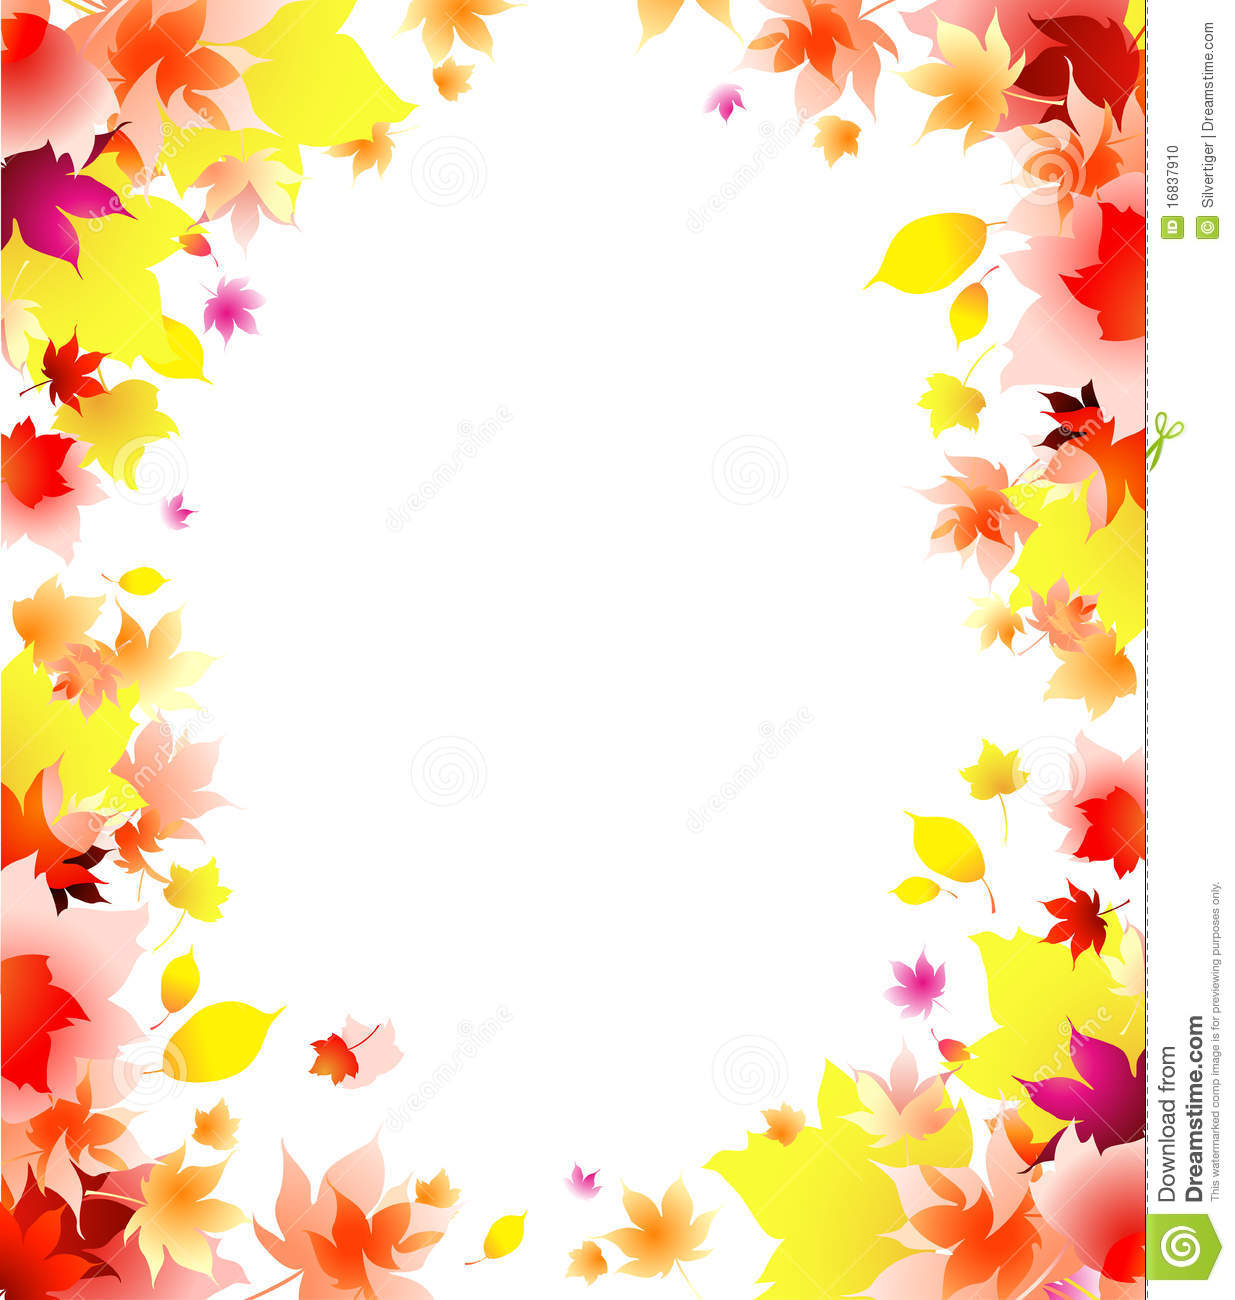 autumn leaves frame background stock photo image 16837910 Easy Snowflake Clip Art free pictures of snowflakes clipart